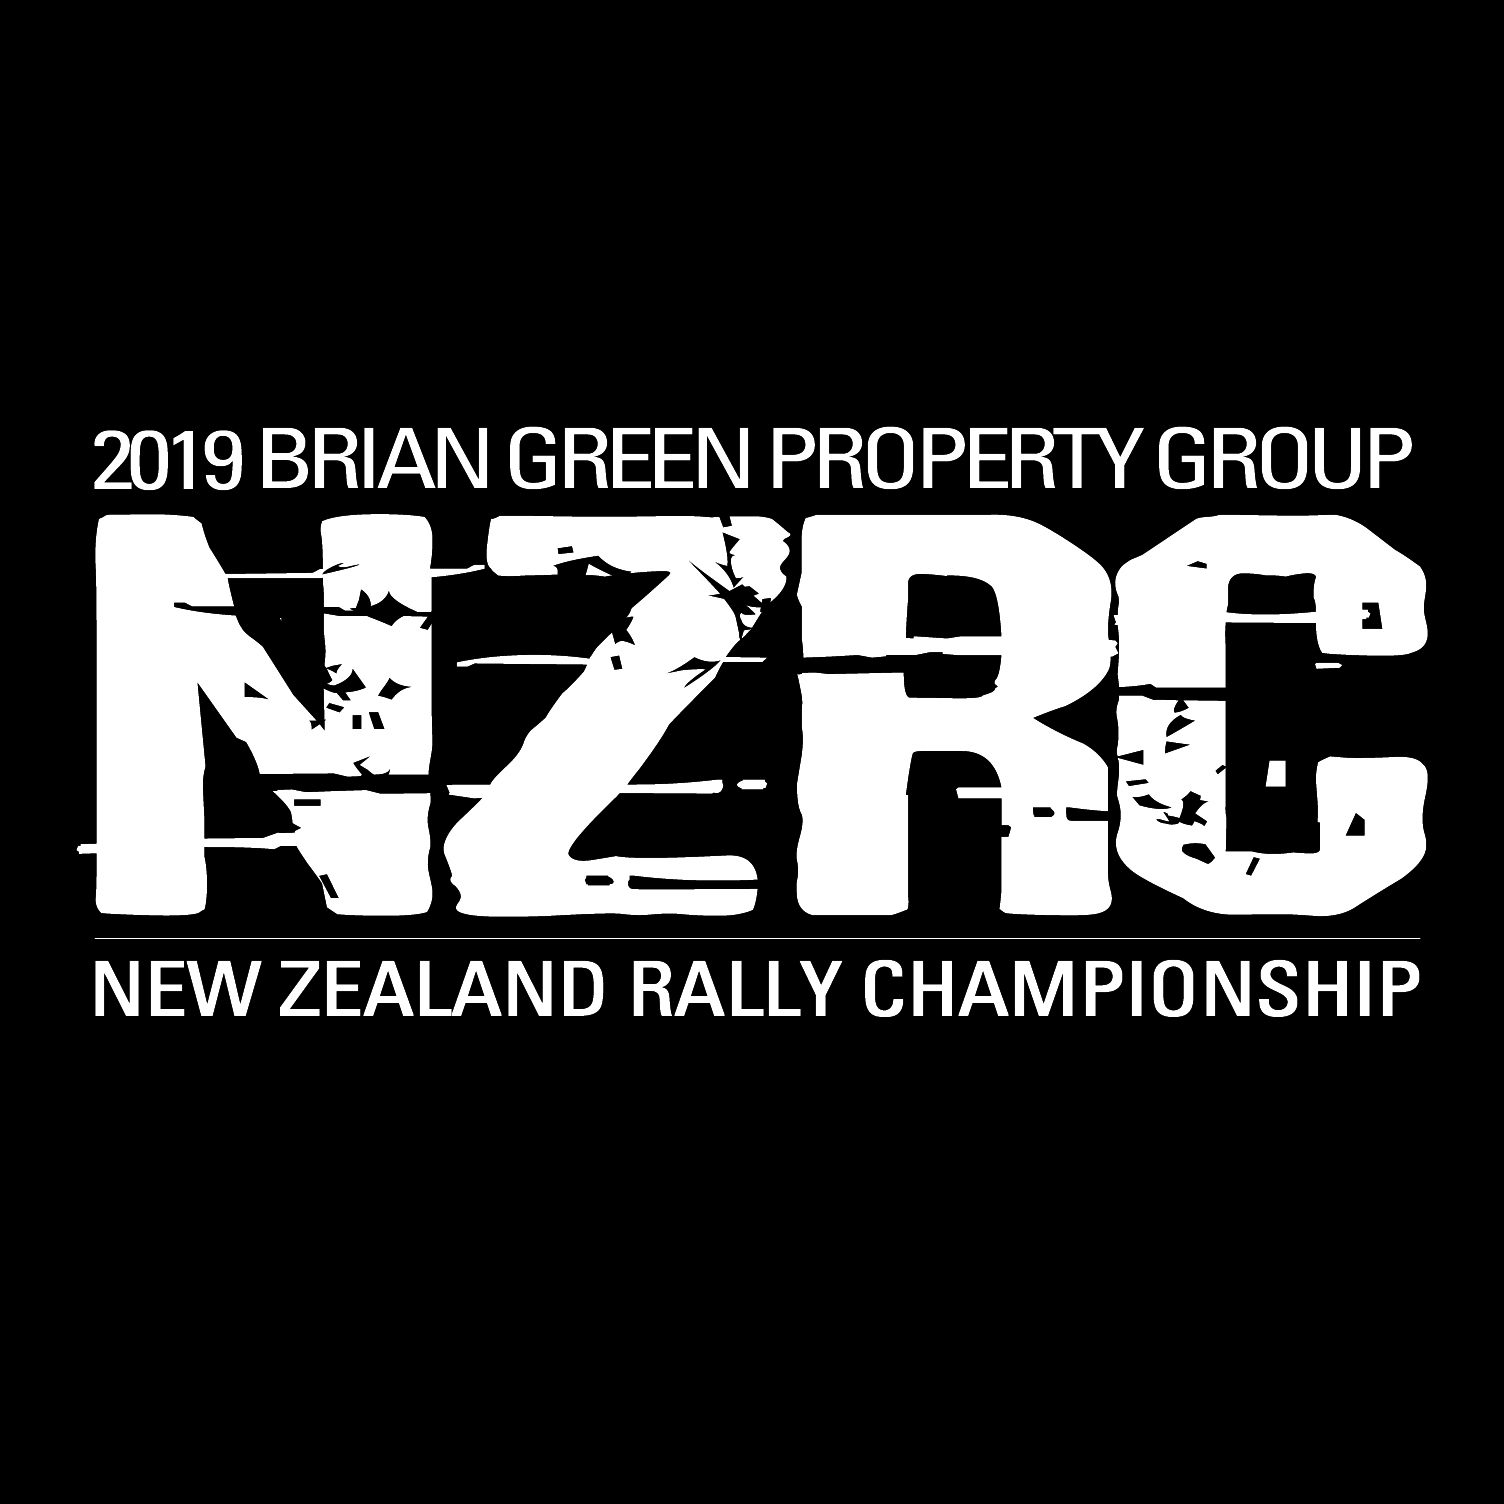 Haggerty thankful for safety features | :: Brian Green Property Group New Zealand Rally Championship ::